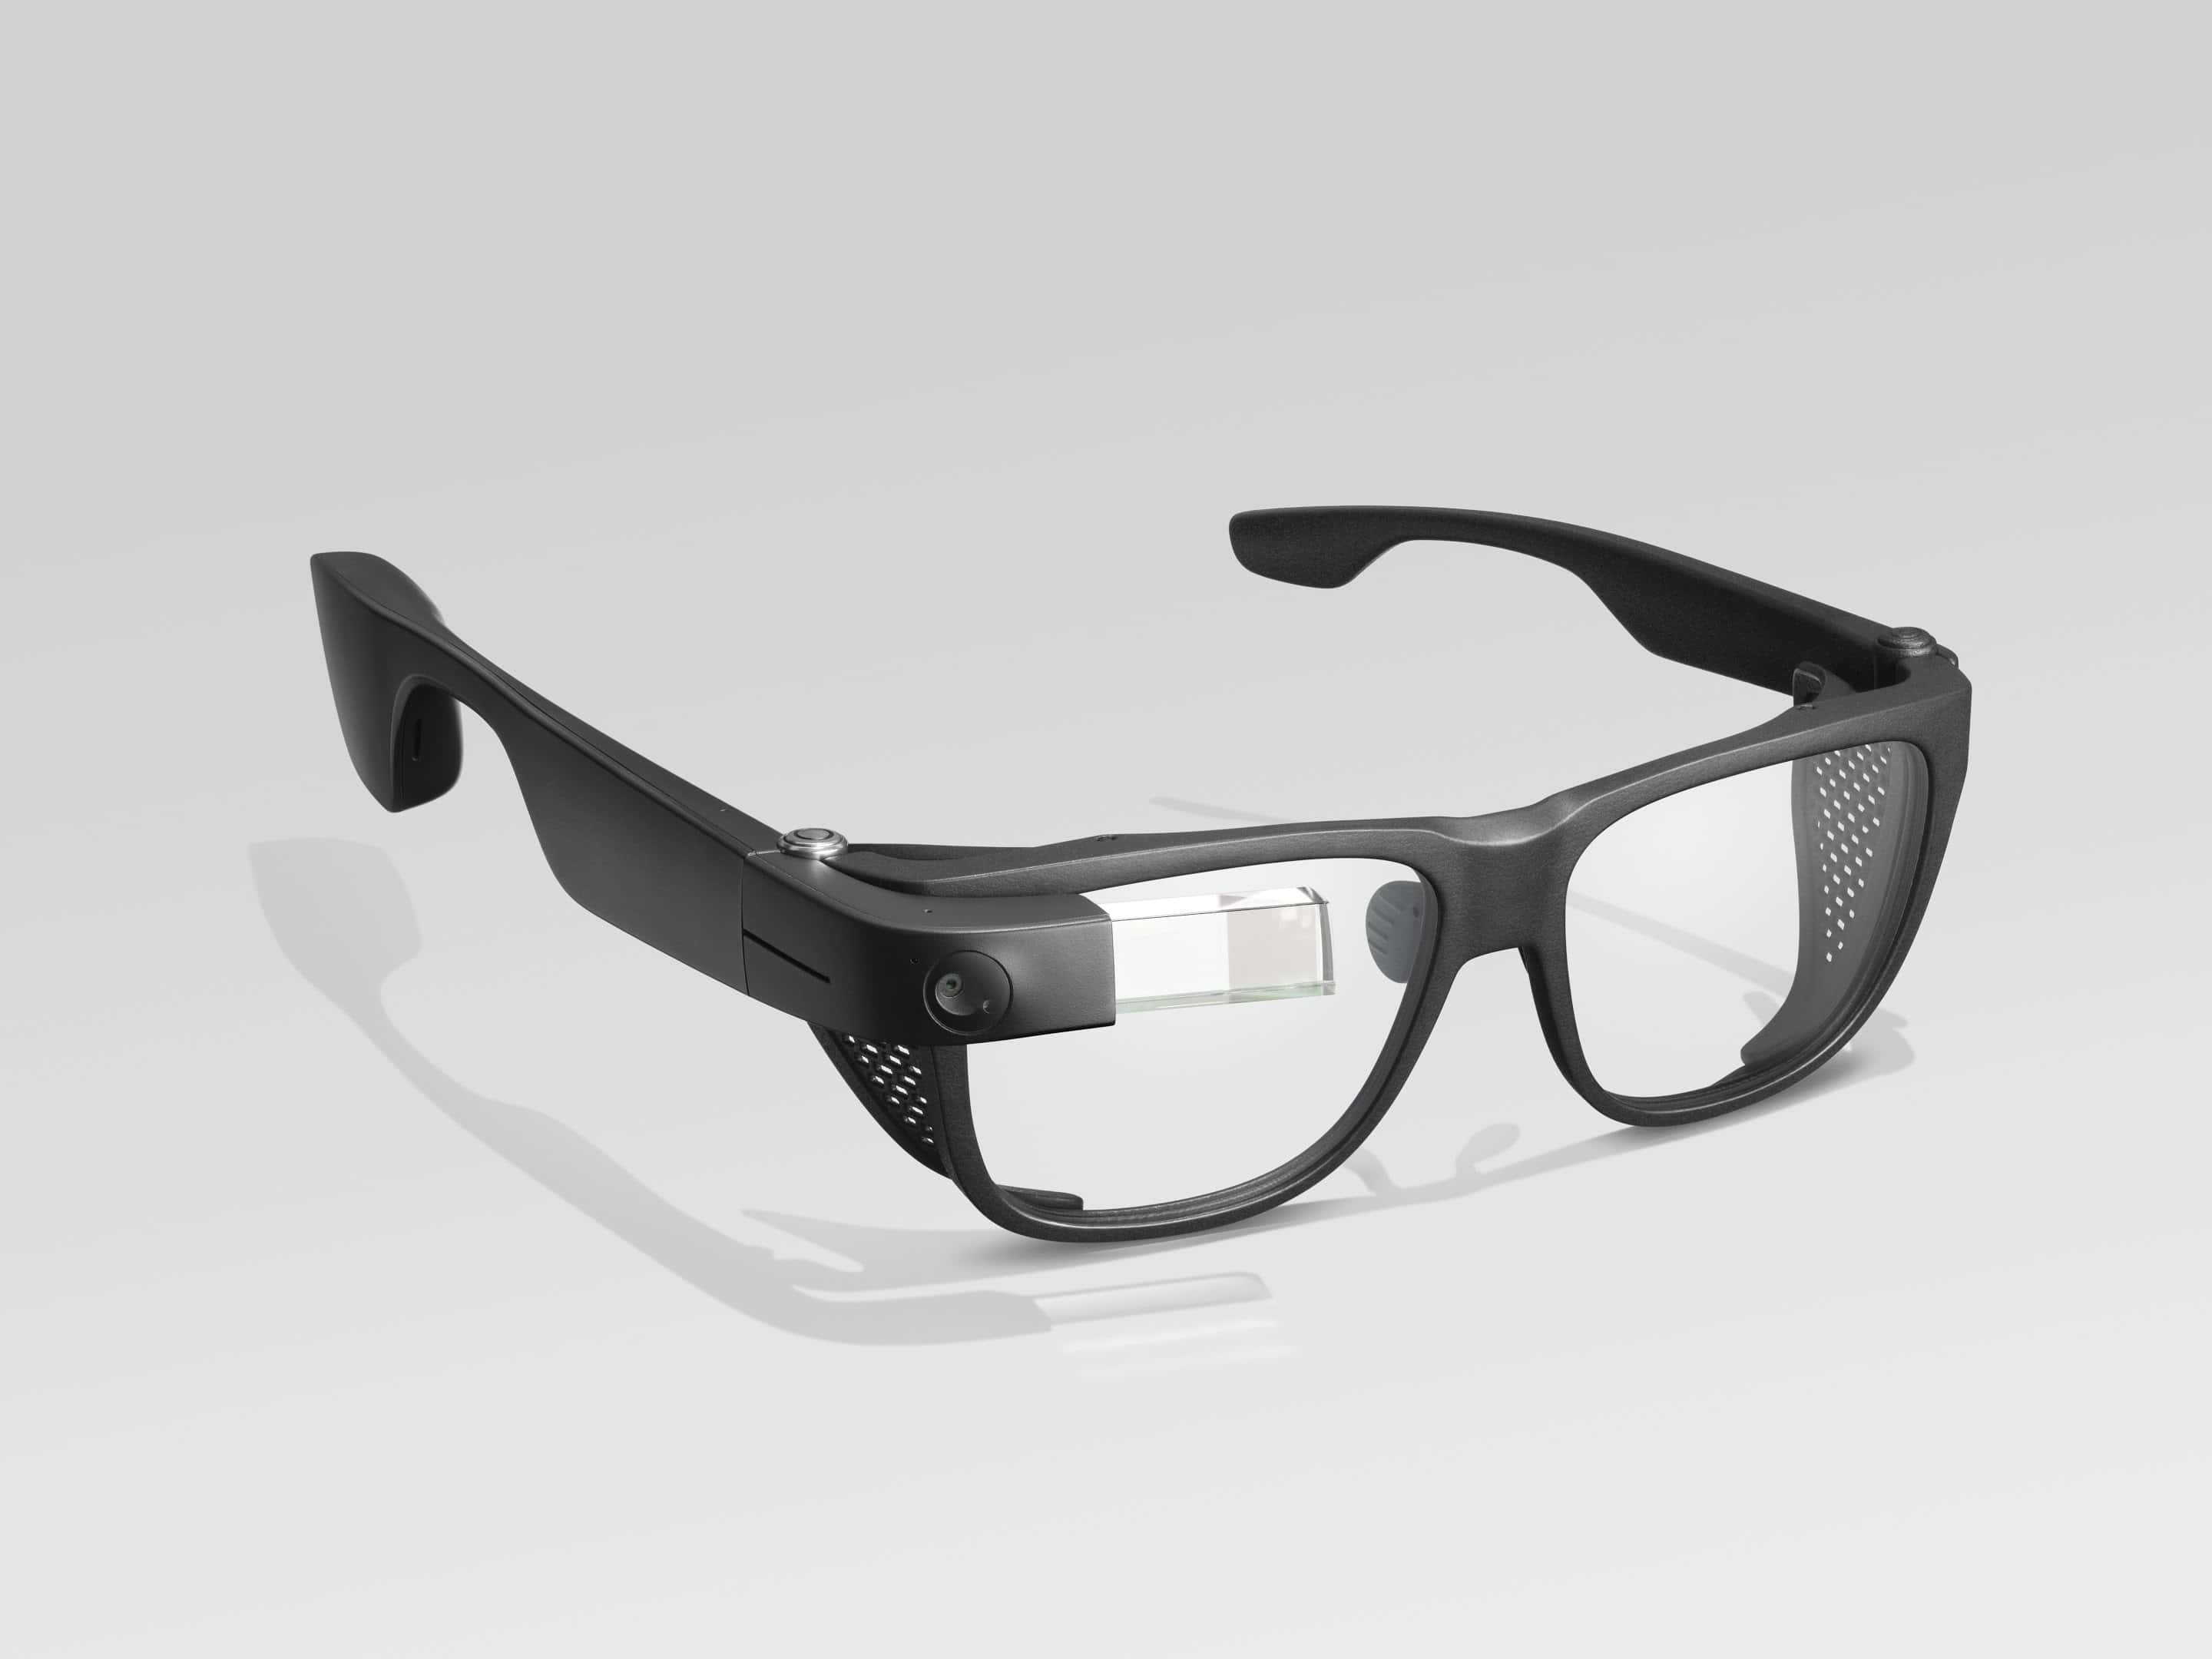 Photo of Envision Glasses with the Smith Optics frames; the frames are black plastic, 2 or 3 times thicker than the titanium frames